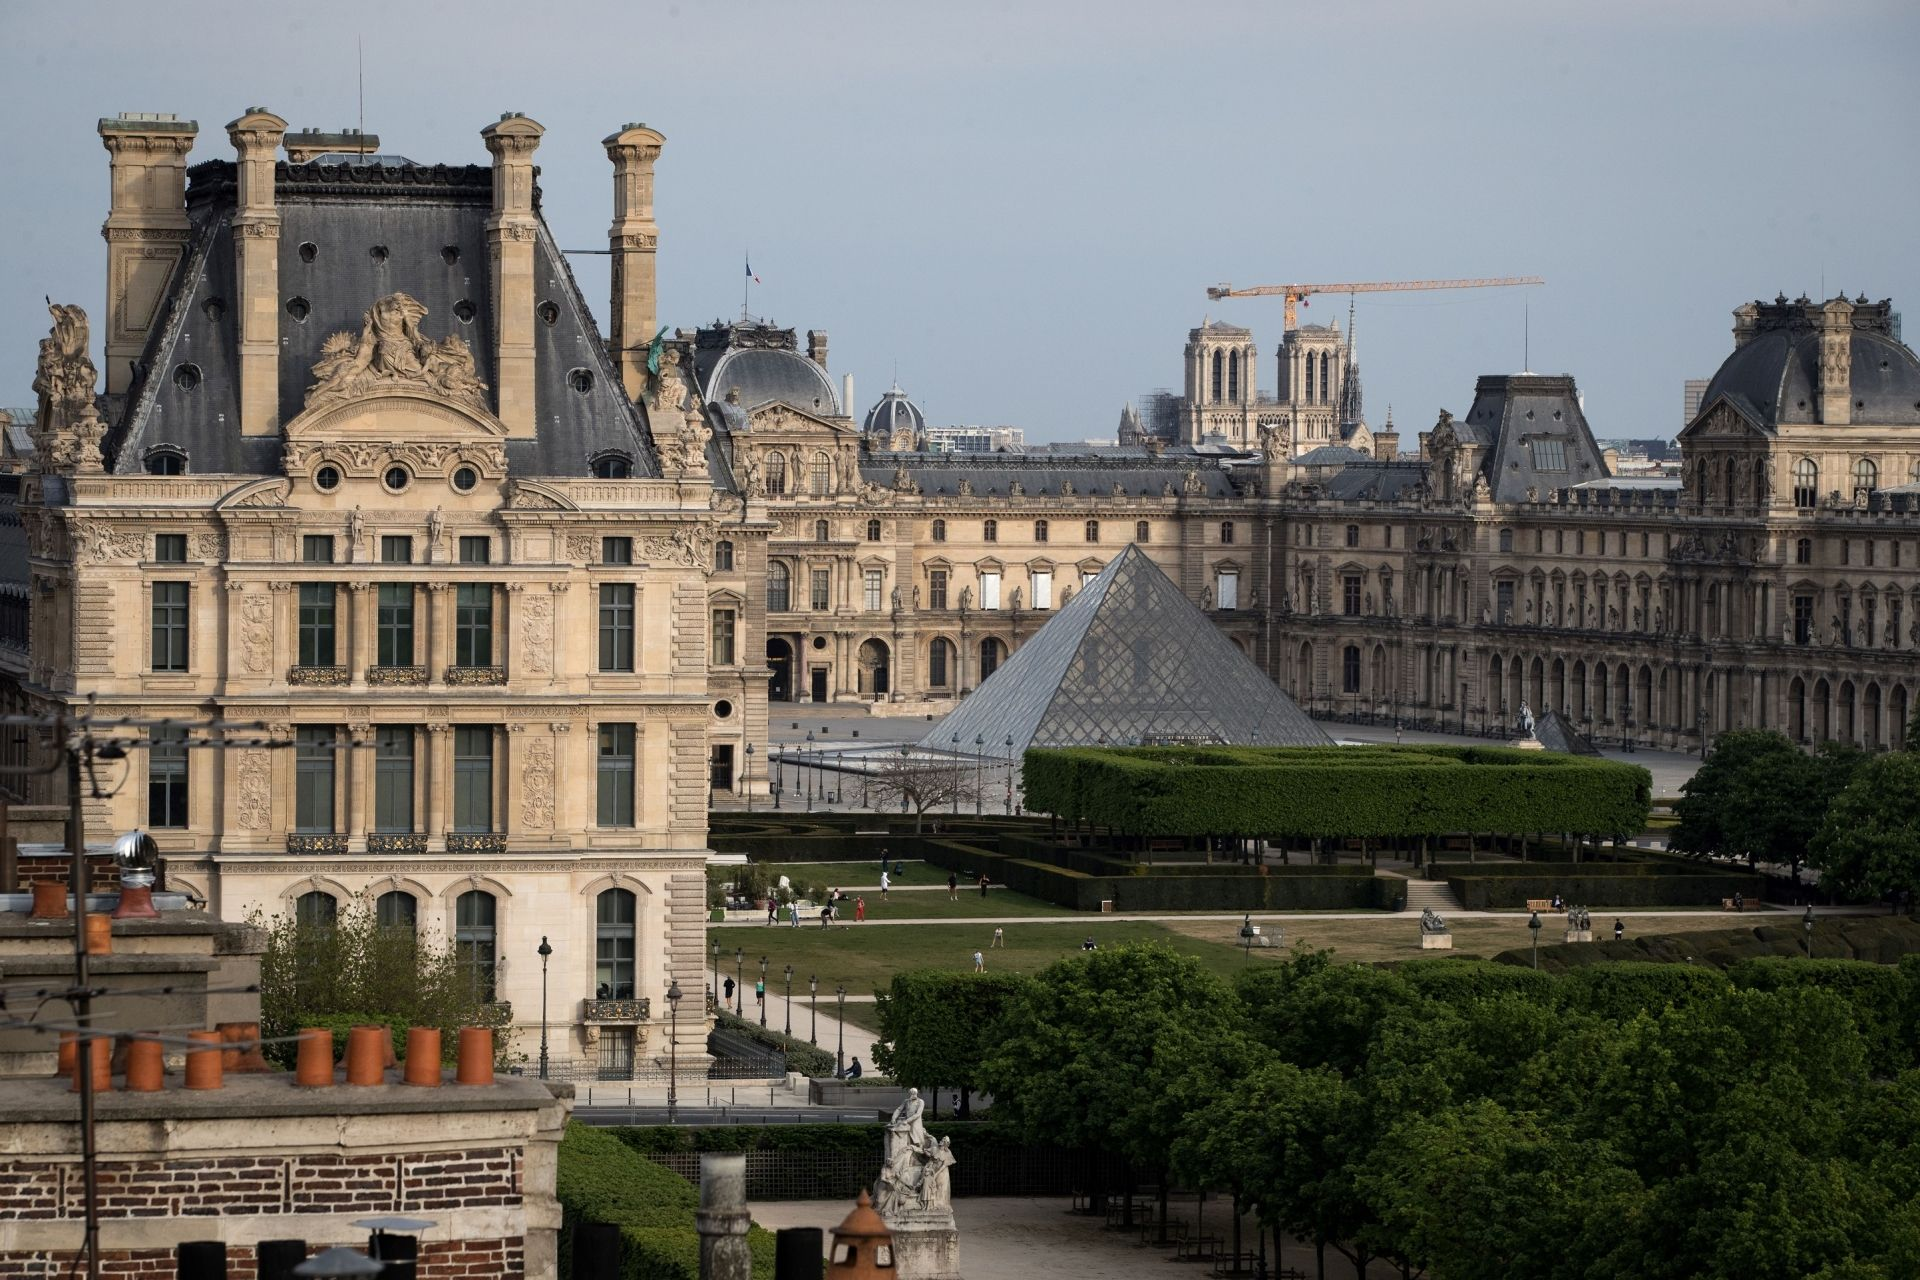 This picture shows the pyramid of The Louvre Museum designed by Ieoh Ming Pei, The Louvre Museum, part of the Tuileries garden and the Notre-Dame de Paris cathedral (background) on April 21, 2020 in Paris, as the country is under lockdown to stop the spread of the Covid-19 pandemic caused by the novel coronavirus. (Photo by JOEL SAGET / AFP)